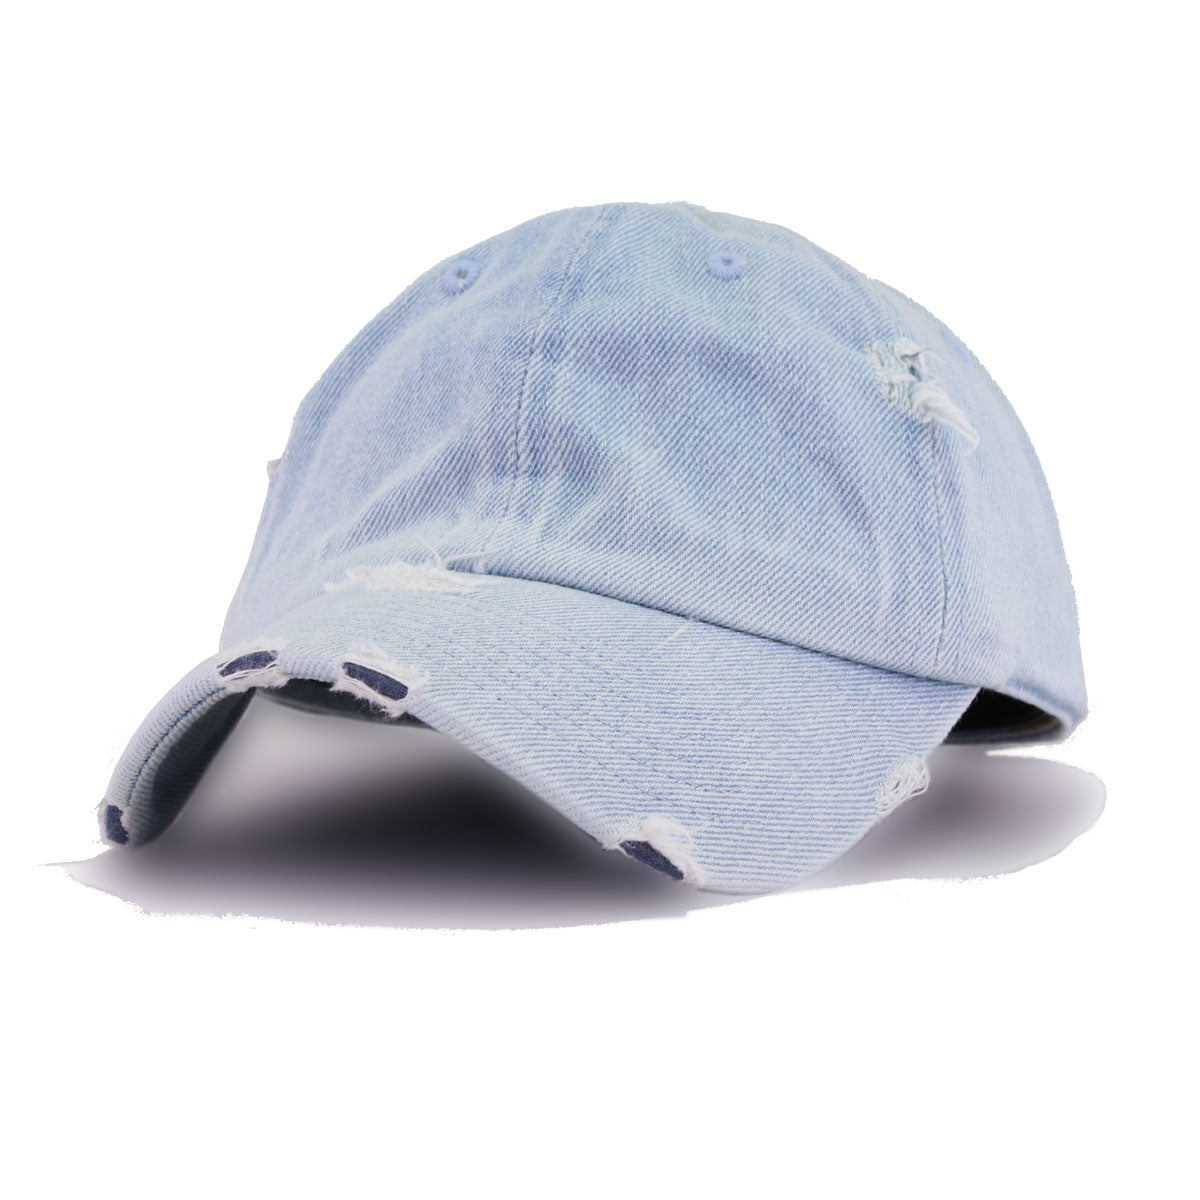 Distressed Light Denim KBEthos Vintage Dad Hat